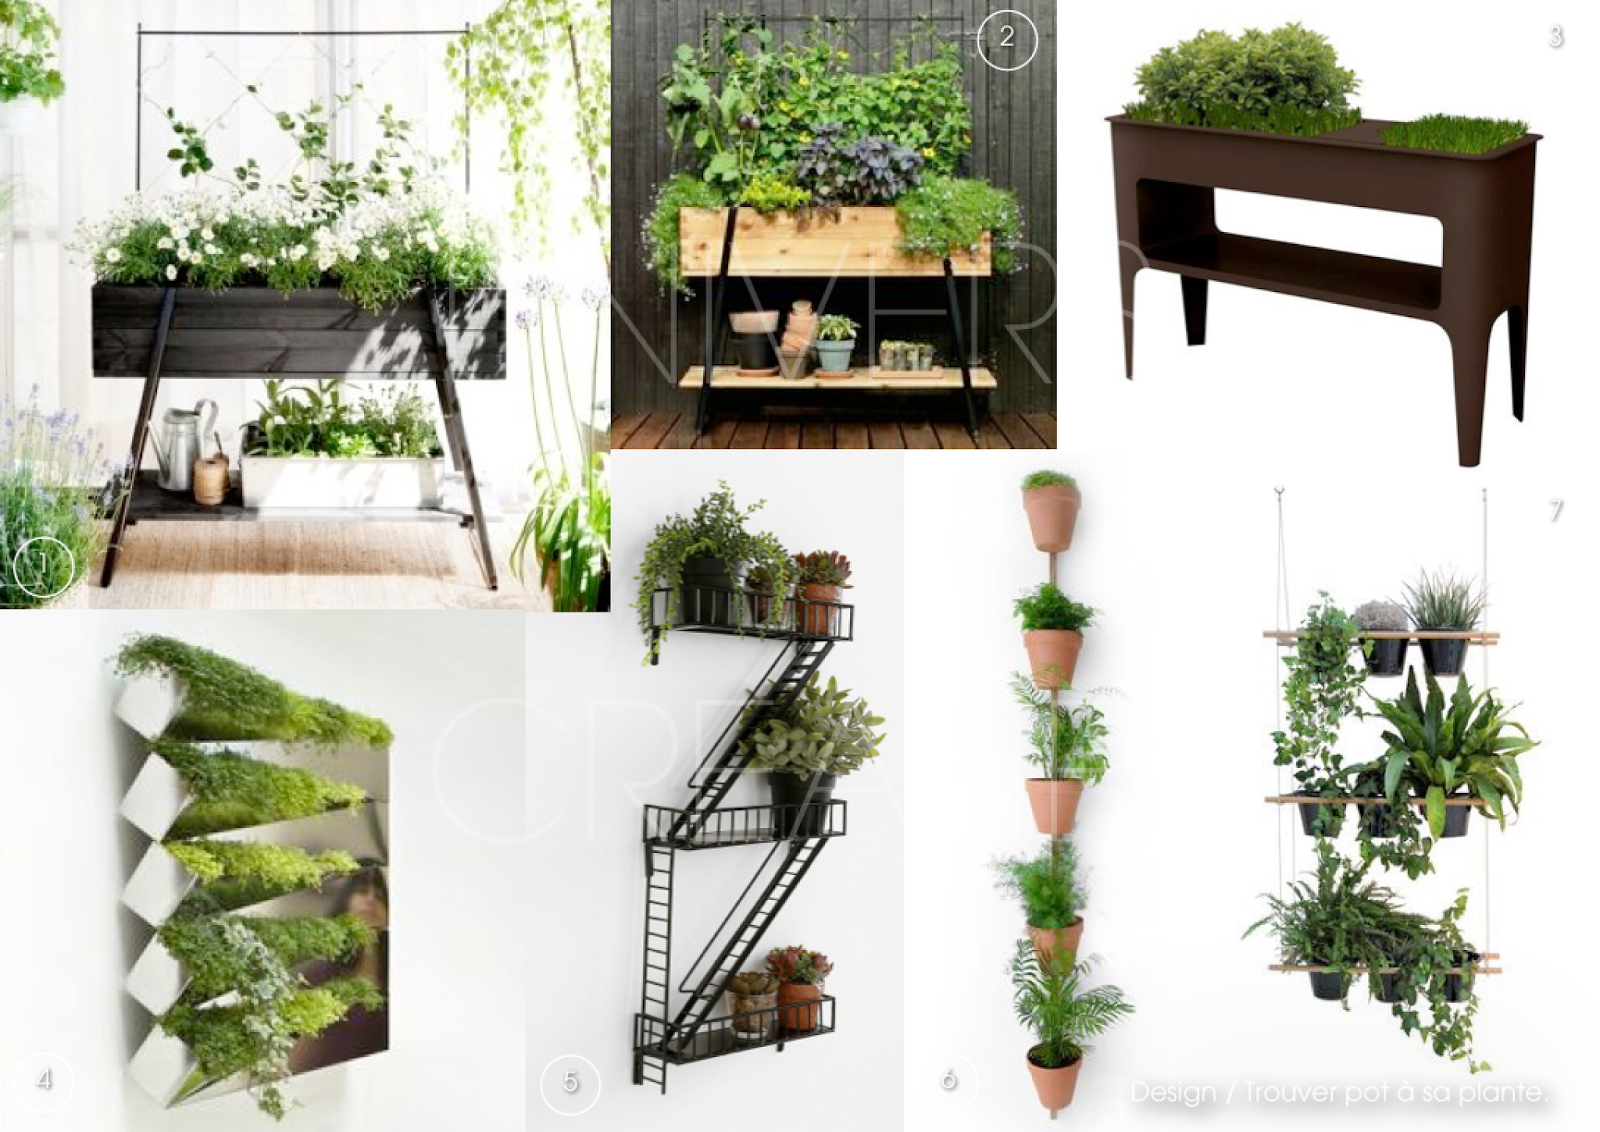 Univers creatifs design trouver pot sa plante for Meuble porte plante ikea